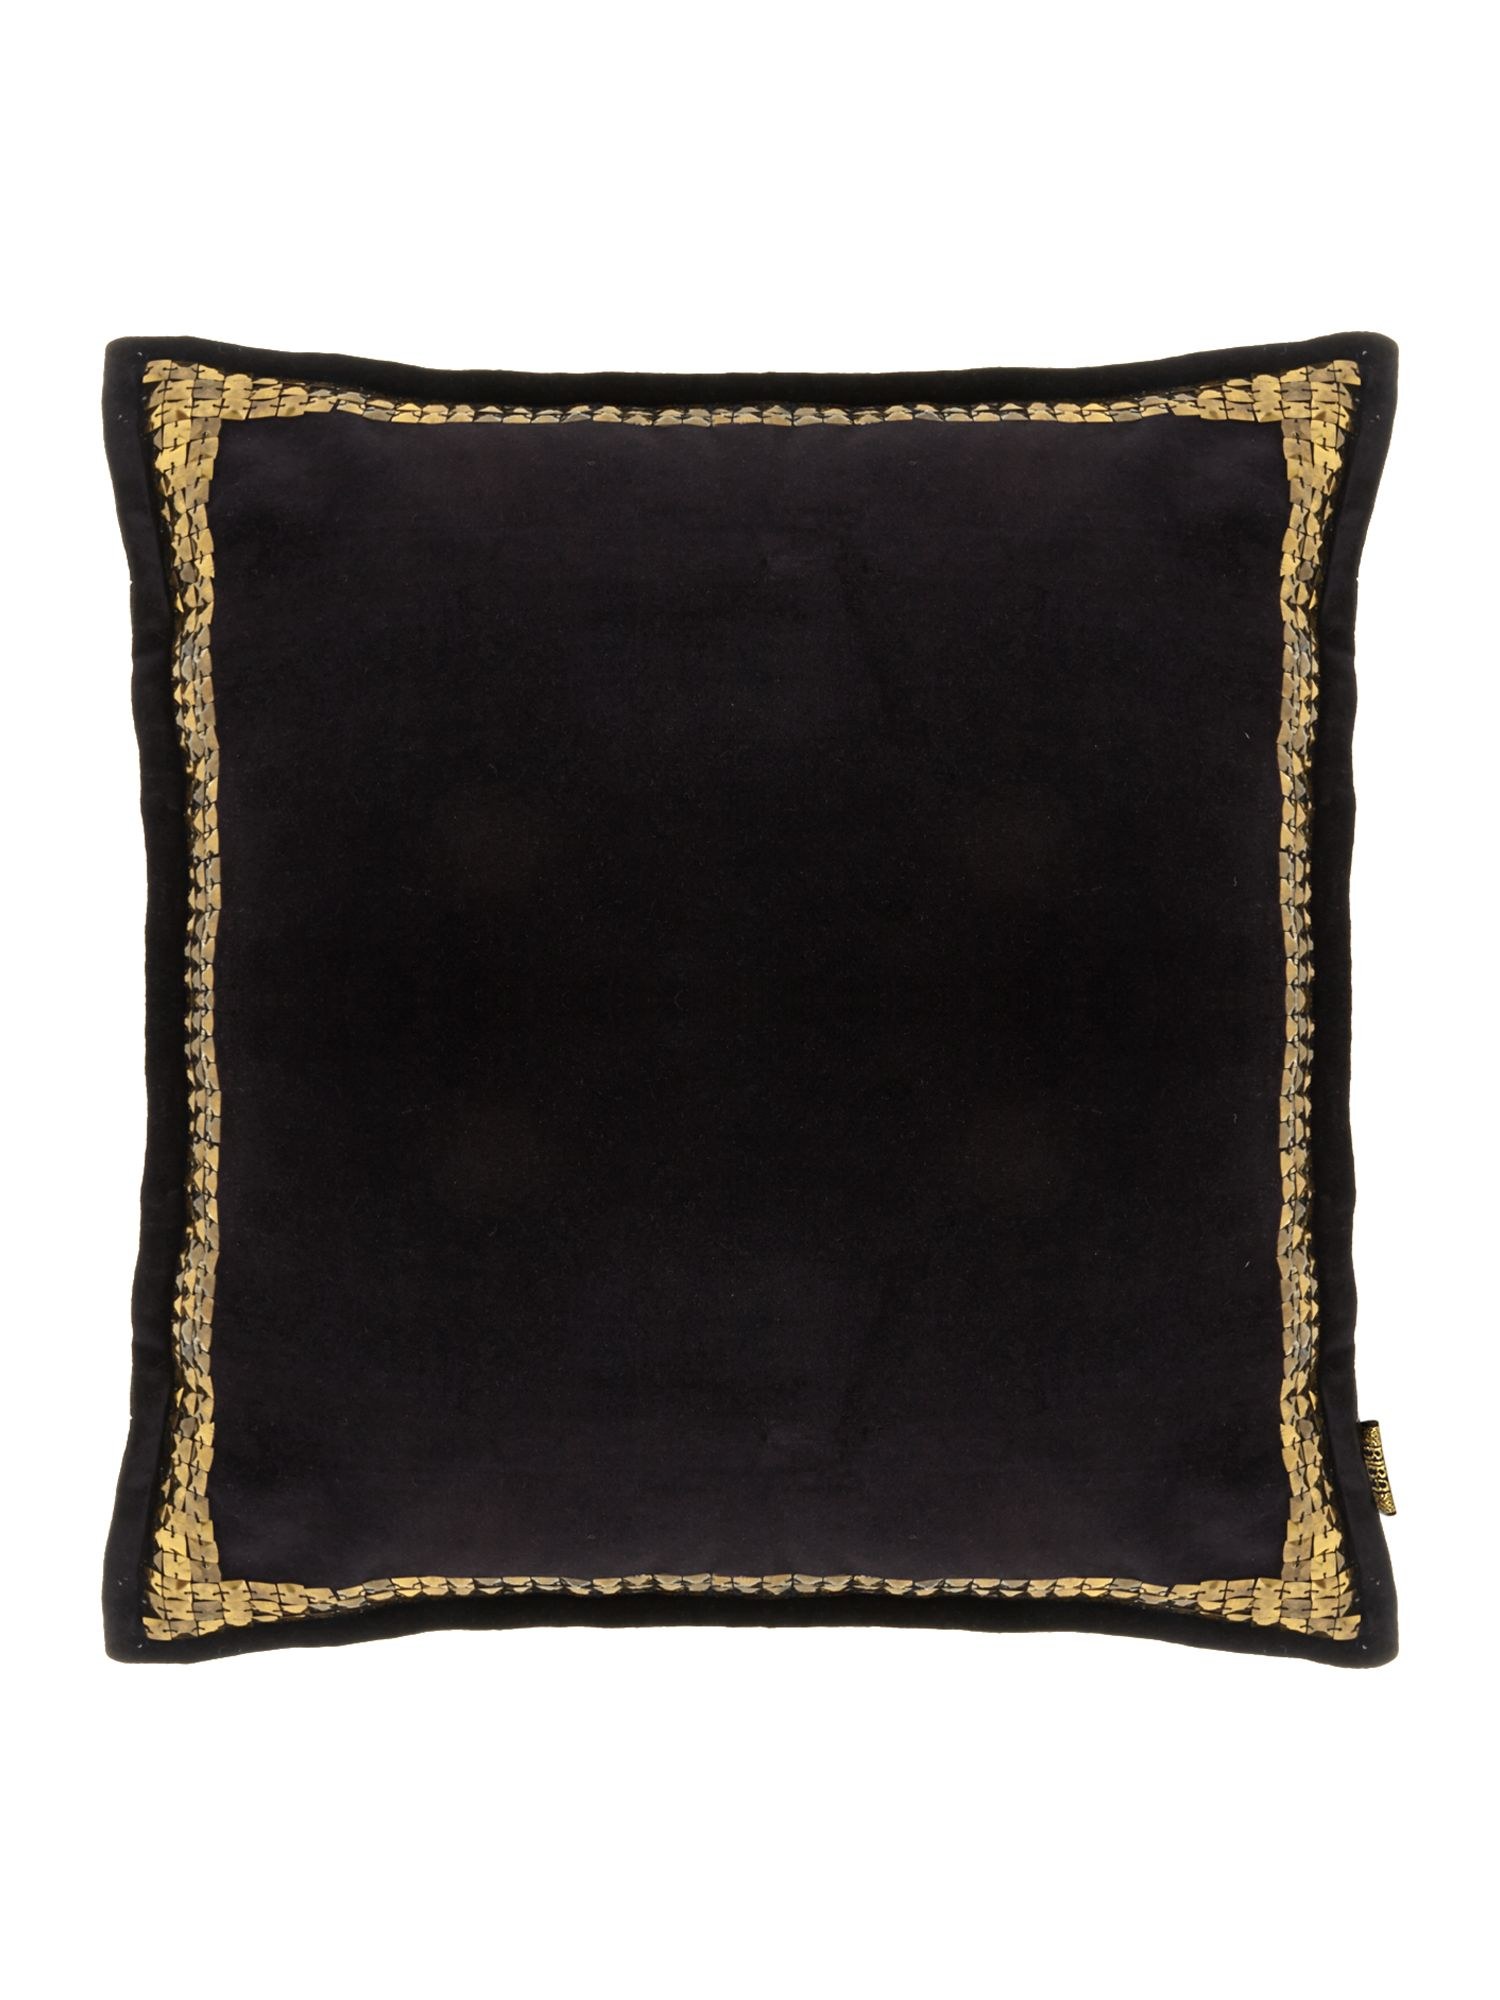 house of fraser biba velvet studded cushion black ebay. Black Bedroom Furniture Sets. Home Design Ideas